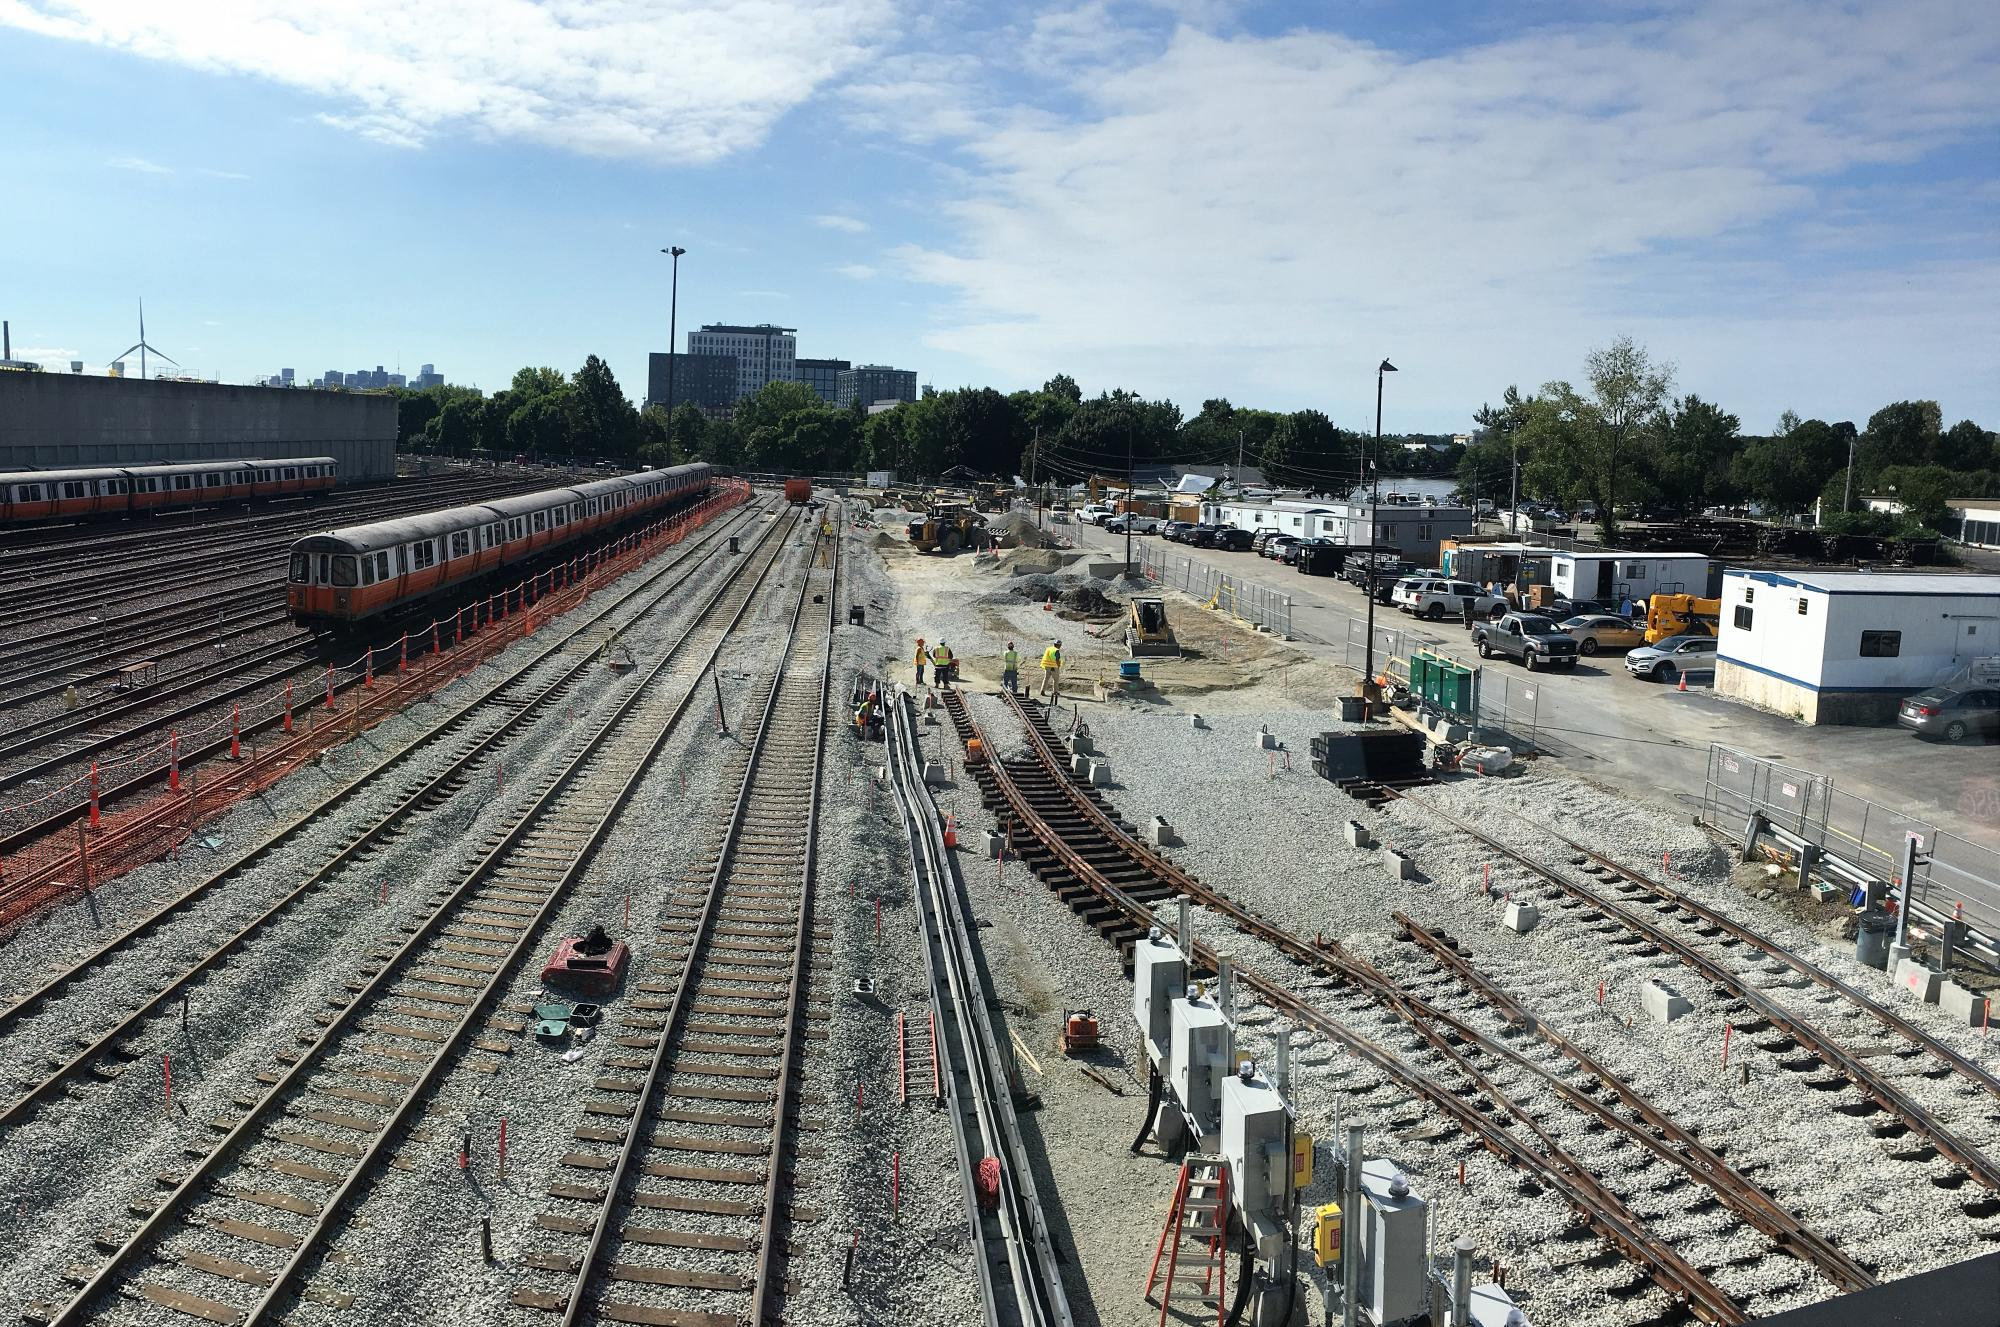 Wellington Yard expansion tracks 33 to 38: Installation of new storage tracks and ballast (September 2018)